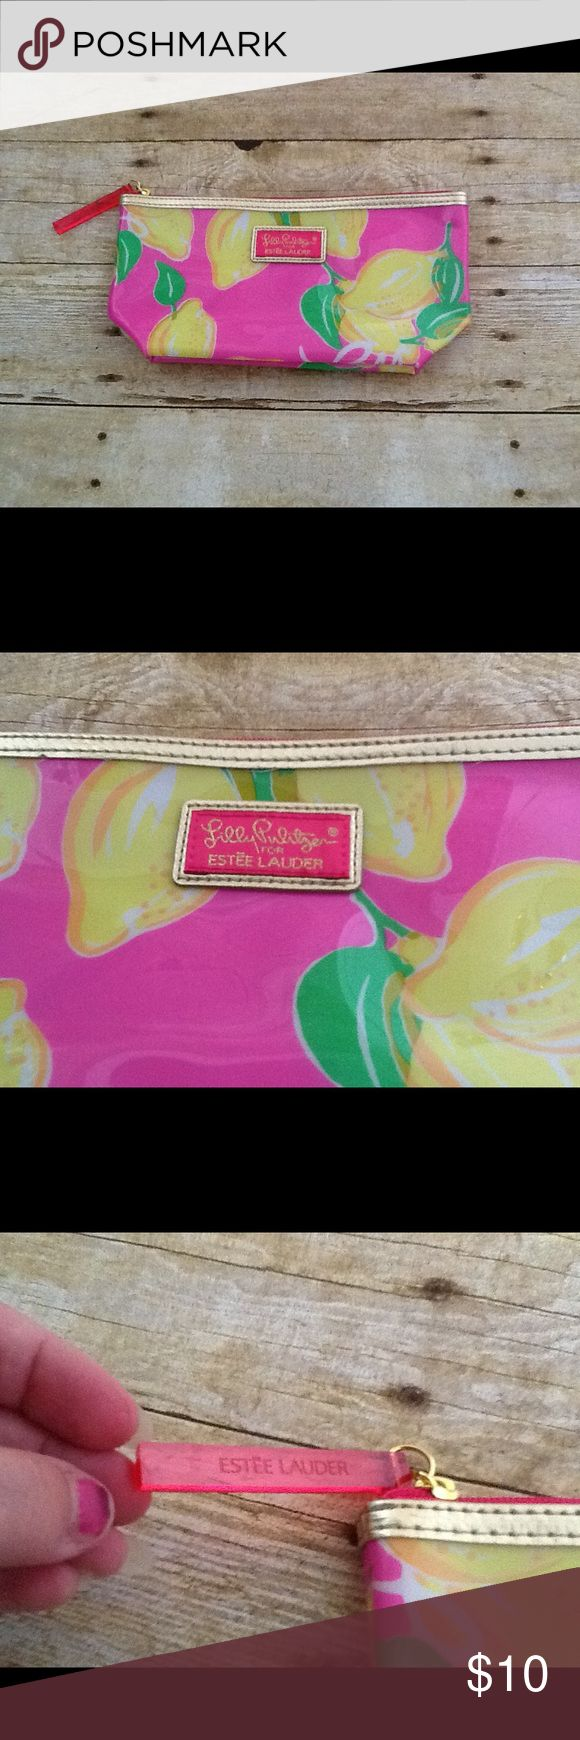 Lilly Pulitzer Estée Lauder Lemons Cosmetic Bag Lilly Pulitzer Estée Lauder Lemons Cosmetic Makeup Bag. Lilly Pulitzer Bags Cosmetic Bags & Cases